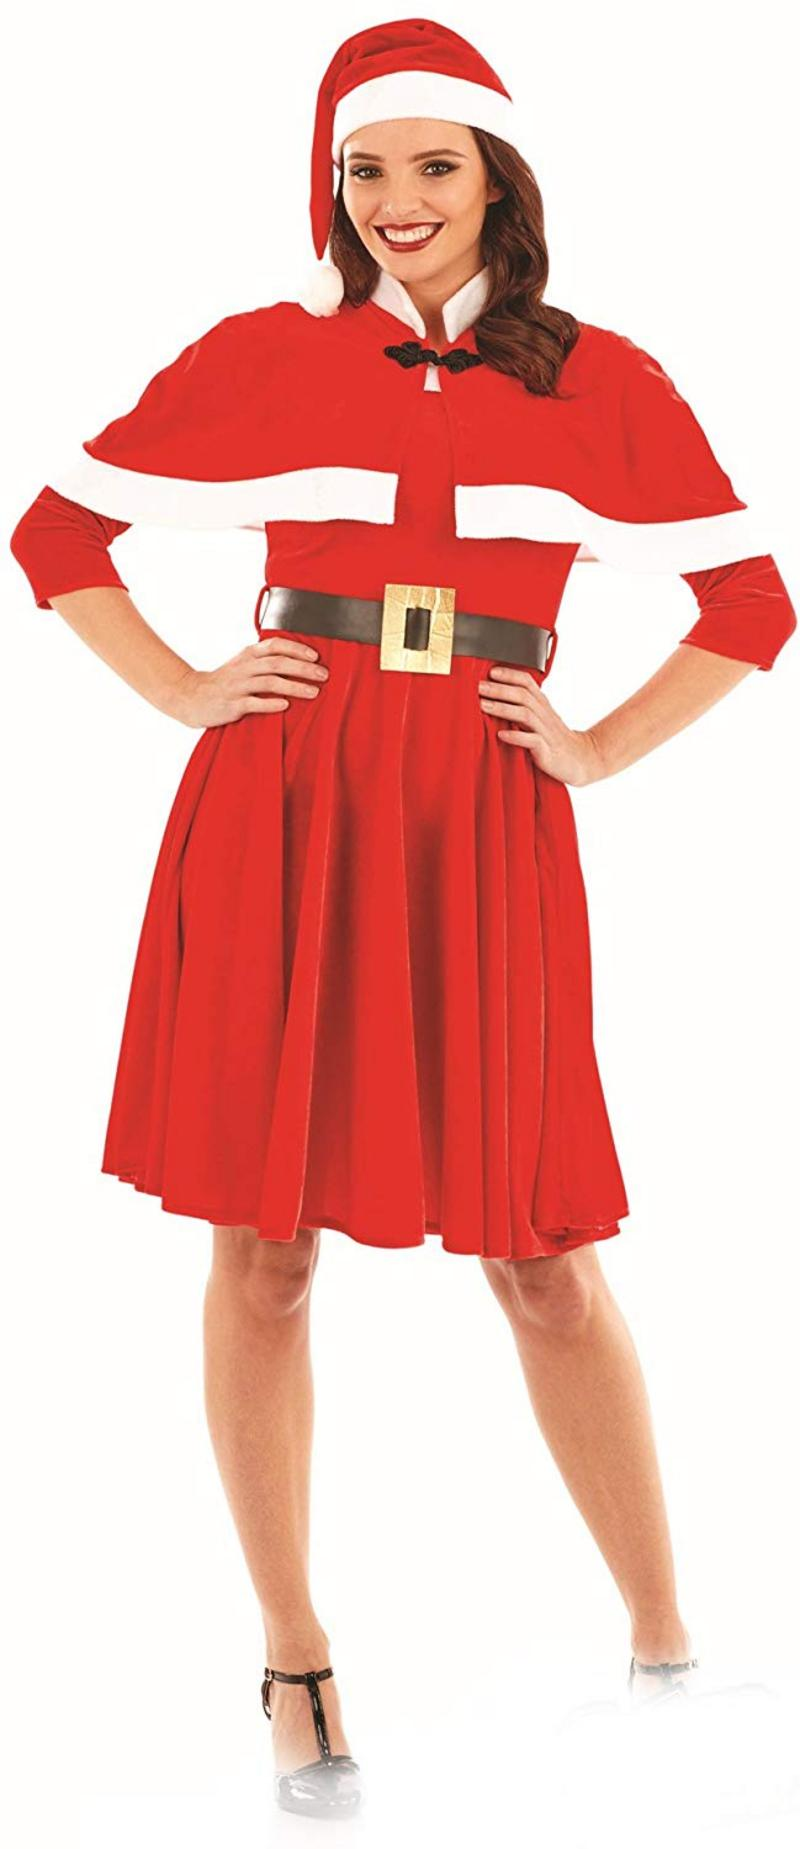 40b46dd2852aa Ladies Womens Miss Santa Fancy Dress Christmas Costume Elf Outfit Mrs Claus.  zoom Hover or click to enlarge. 1